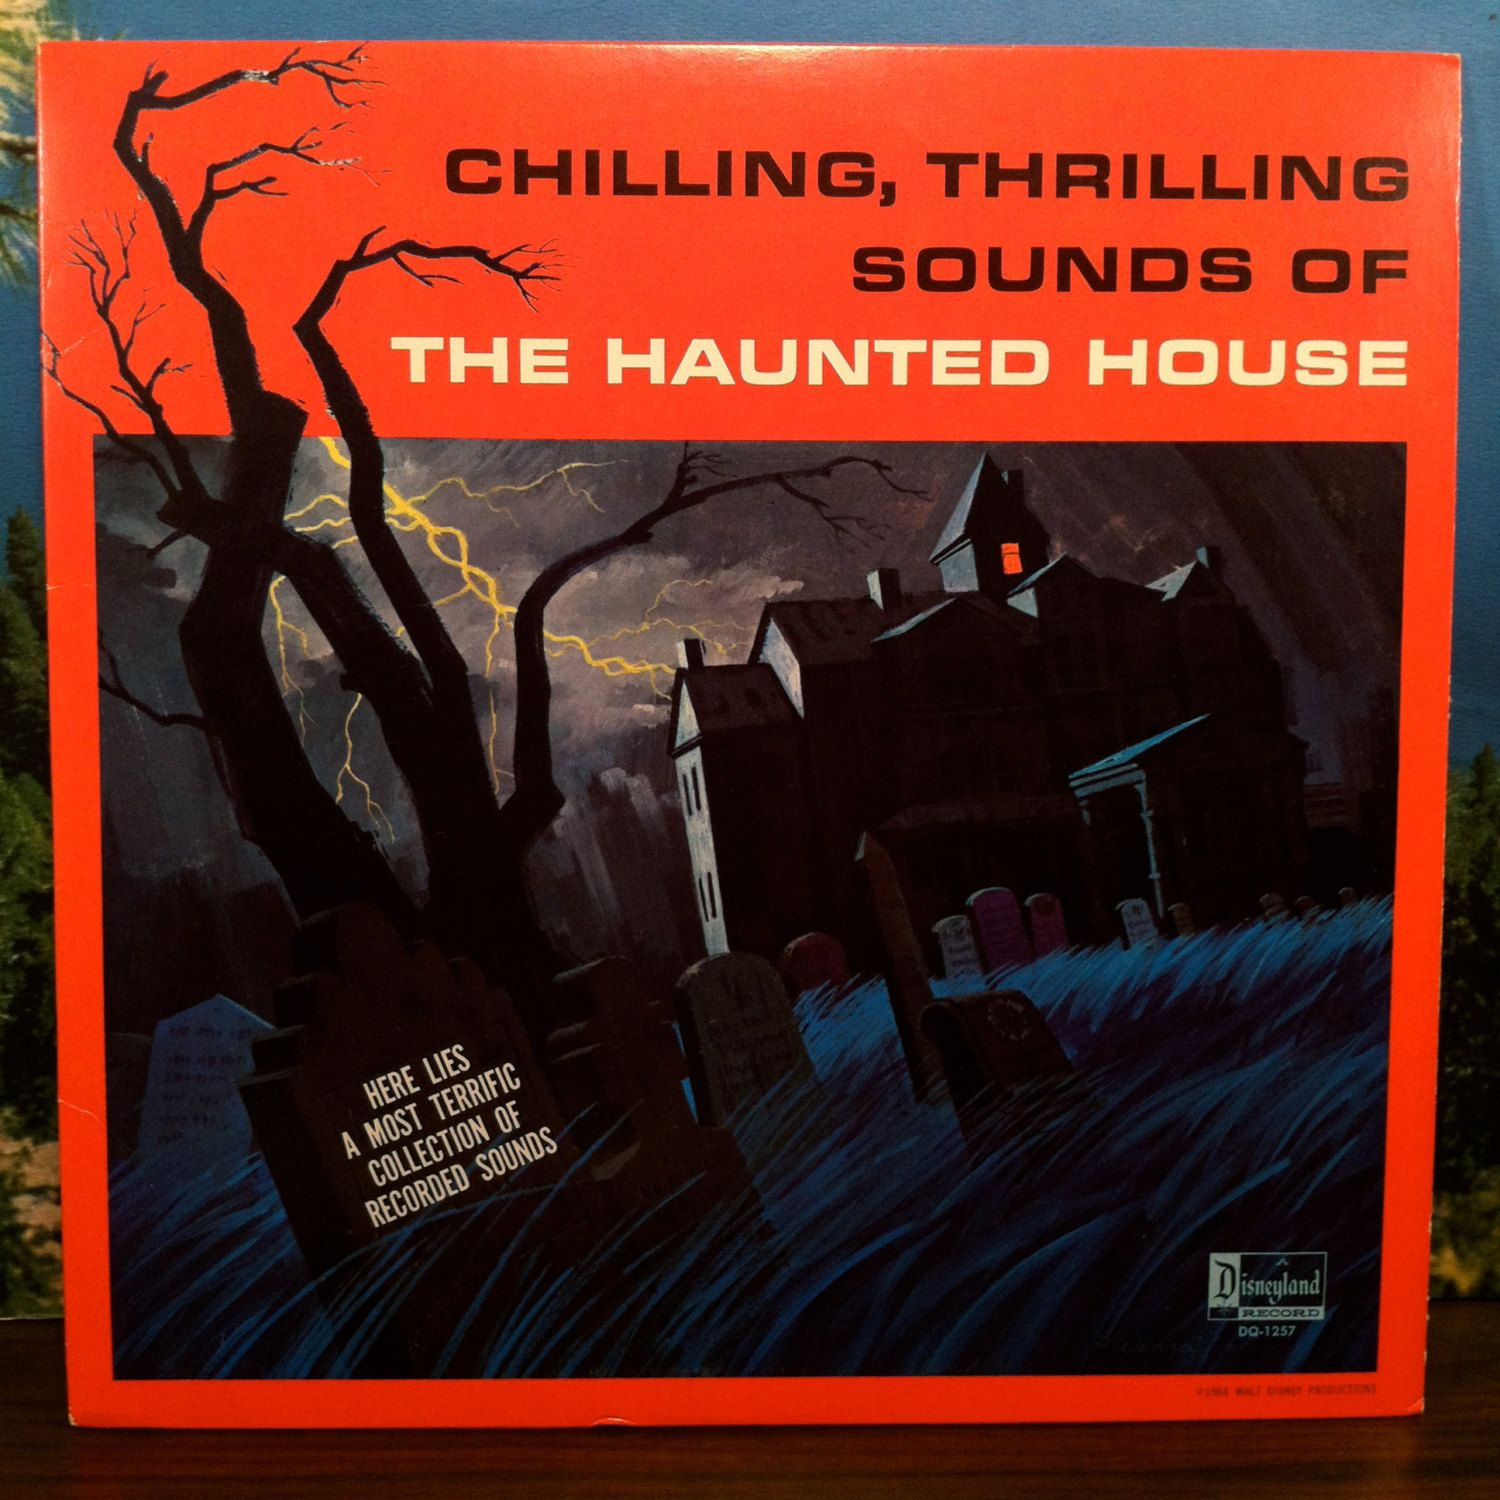 Chilling, Thrilling Sounds of The Haunted House Vinyl Record LP ...